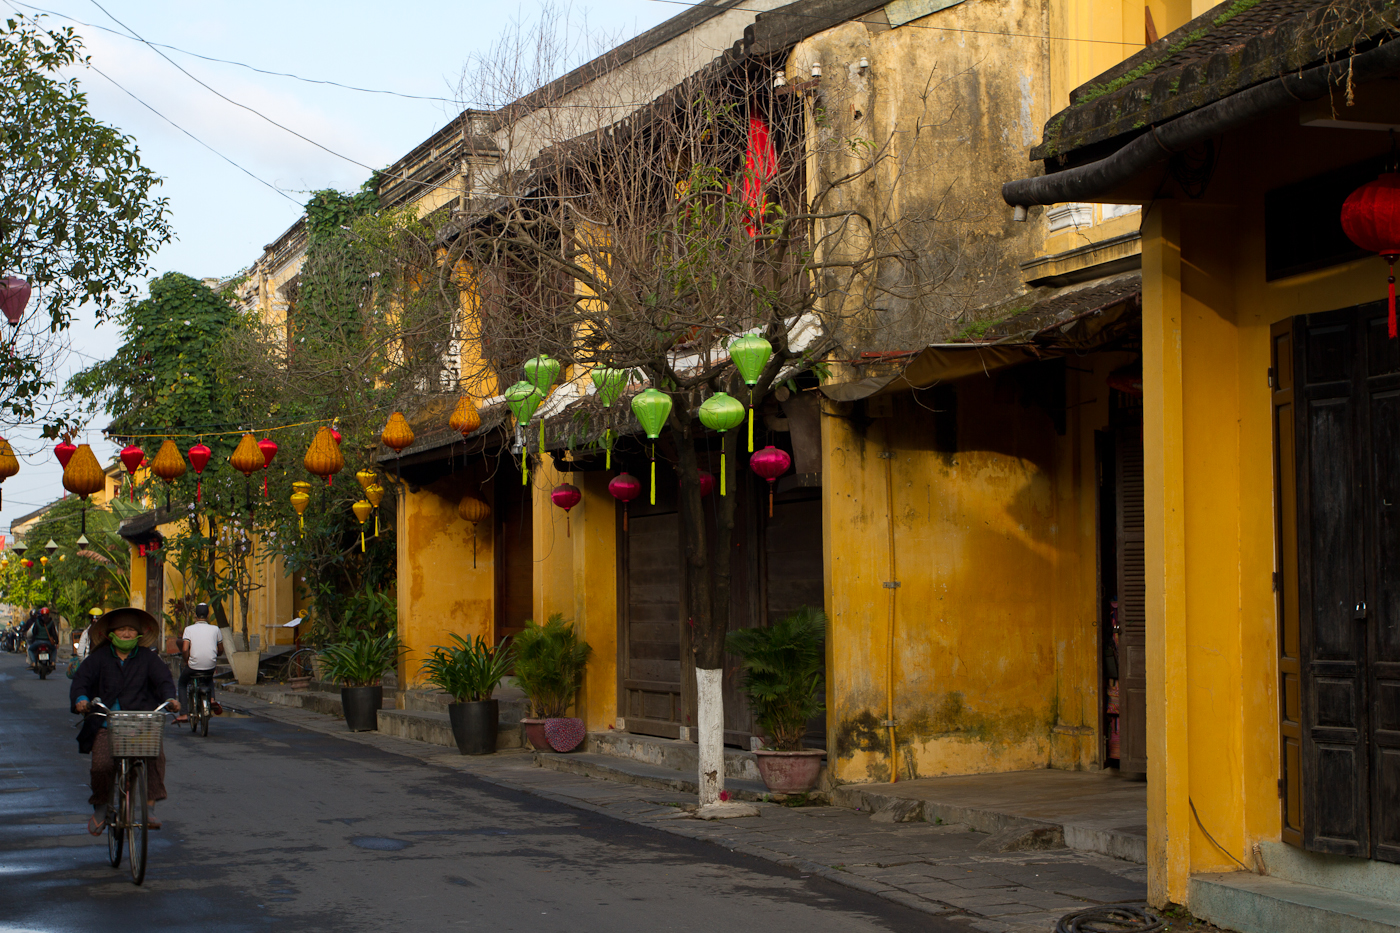 Early morning on the streets of Hoi An